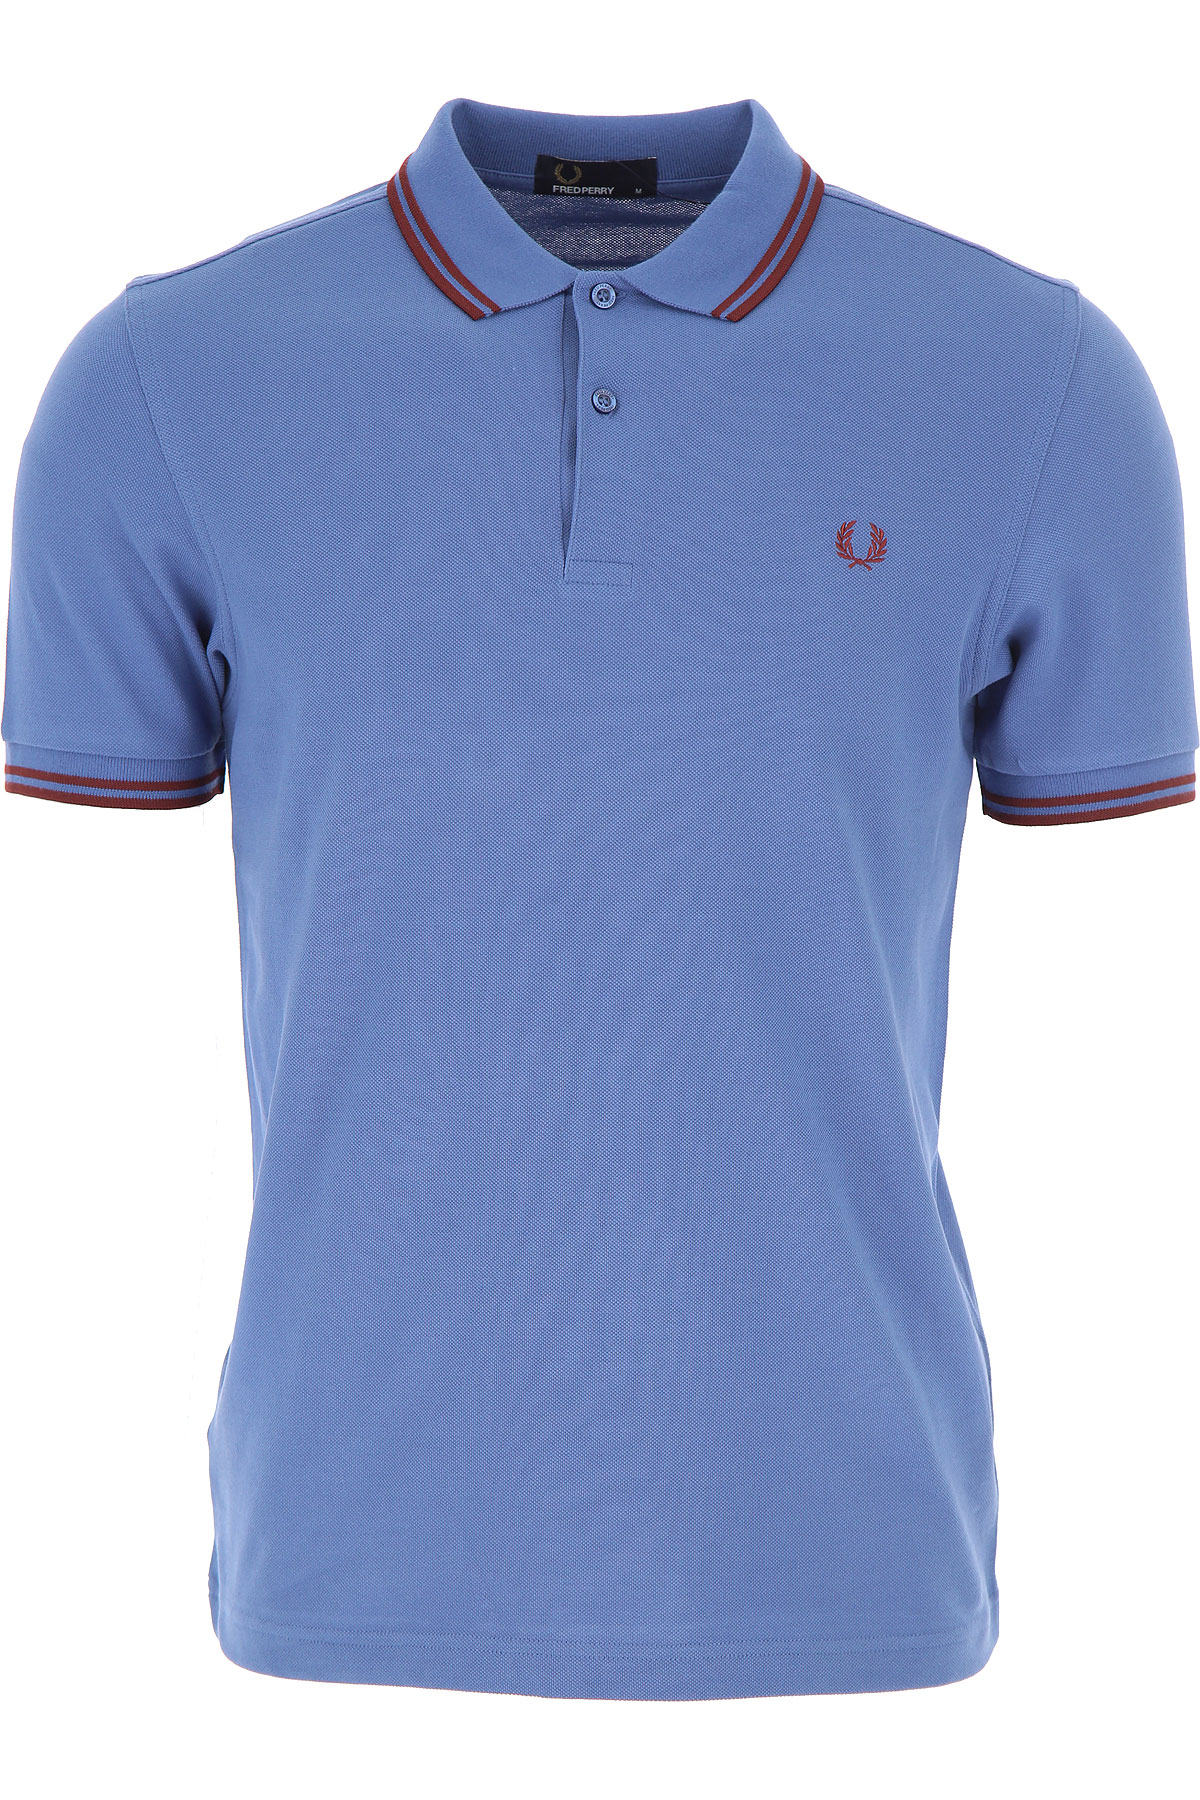 Image of Fred Perry Polo Shirt for Men, School Blue, Cotton, 2017, L M S XL